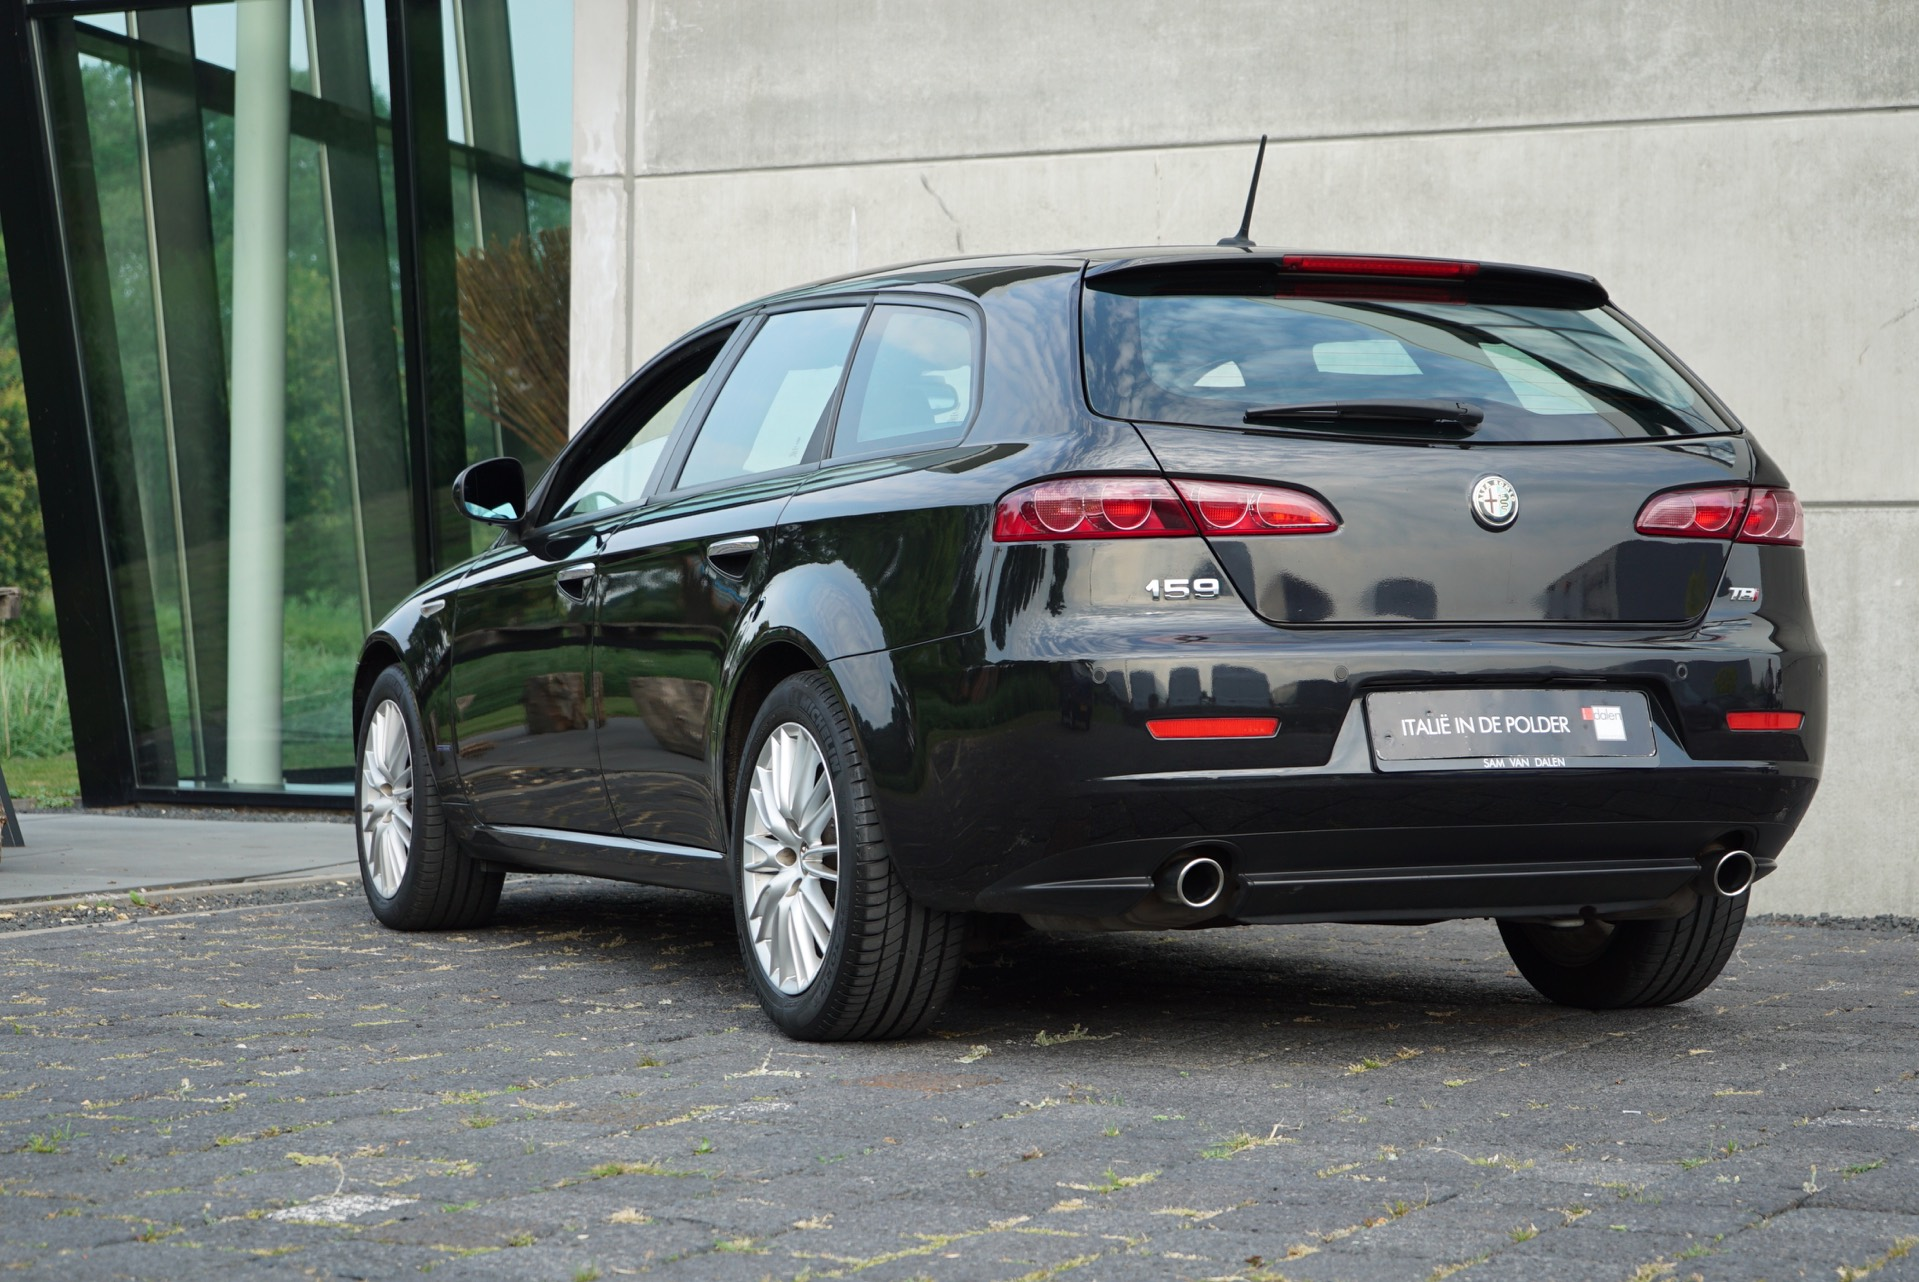 ALFA 159 SPORTWAGON 1750i TURBO TBI